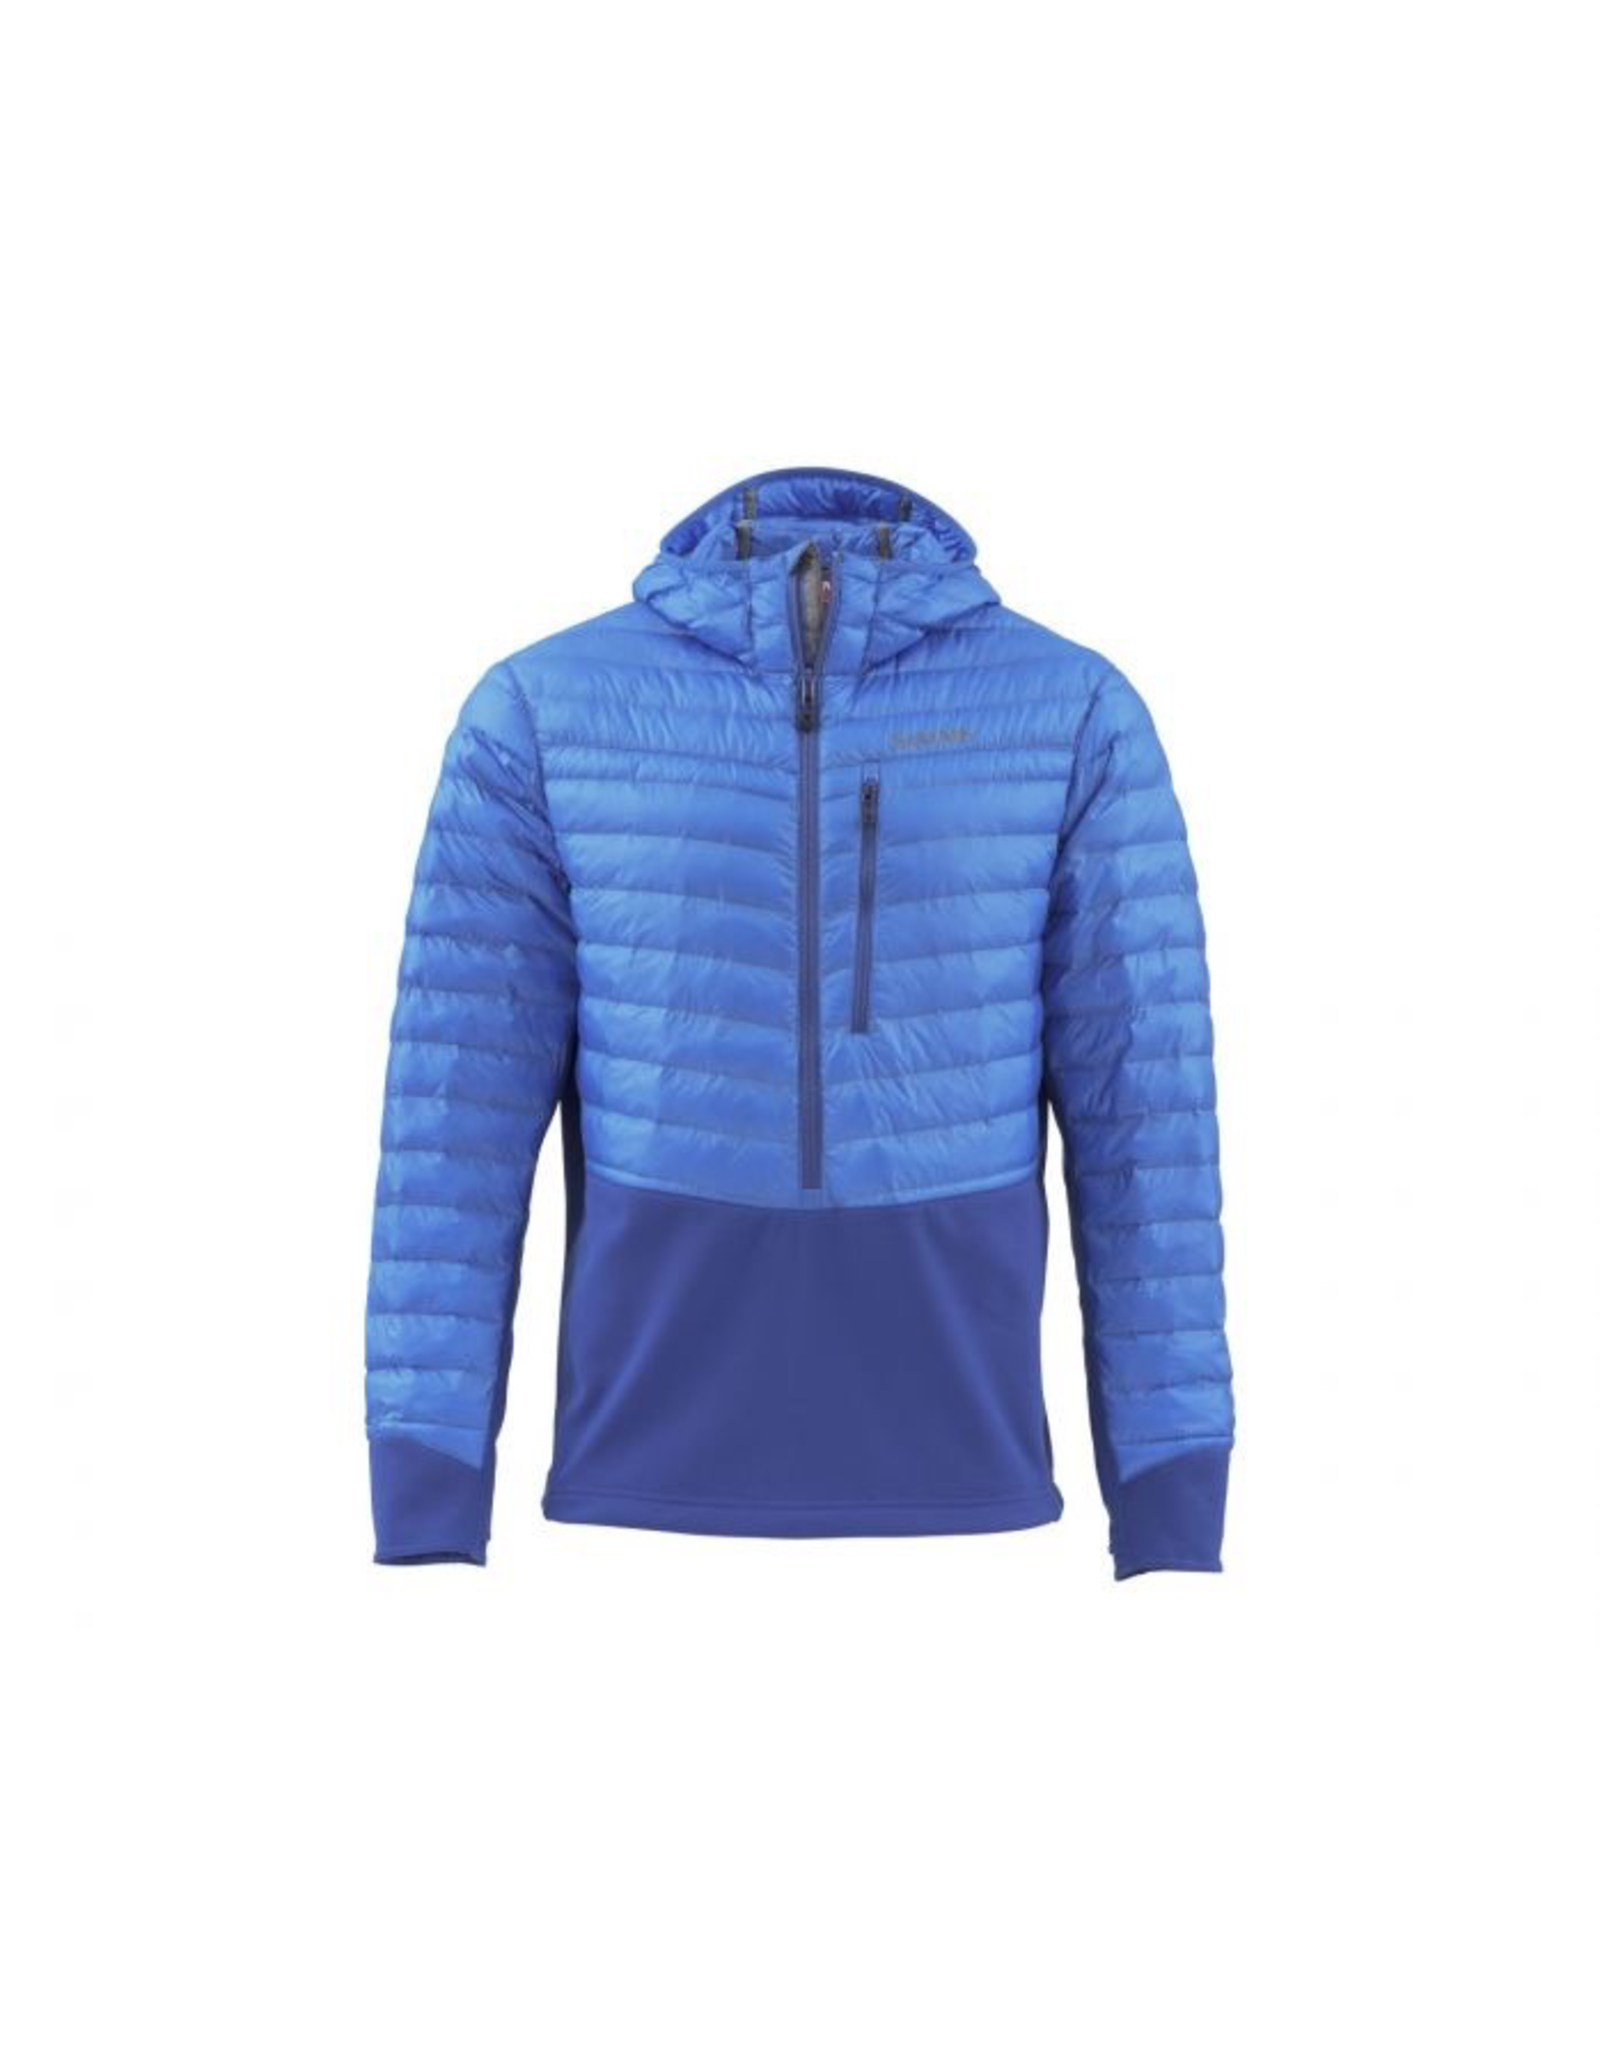 This water-shedding insulated pull-on hoody features stitchless quilt construction and a stretch-fleece lower for the perfect under-wader or bibs layering piece.